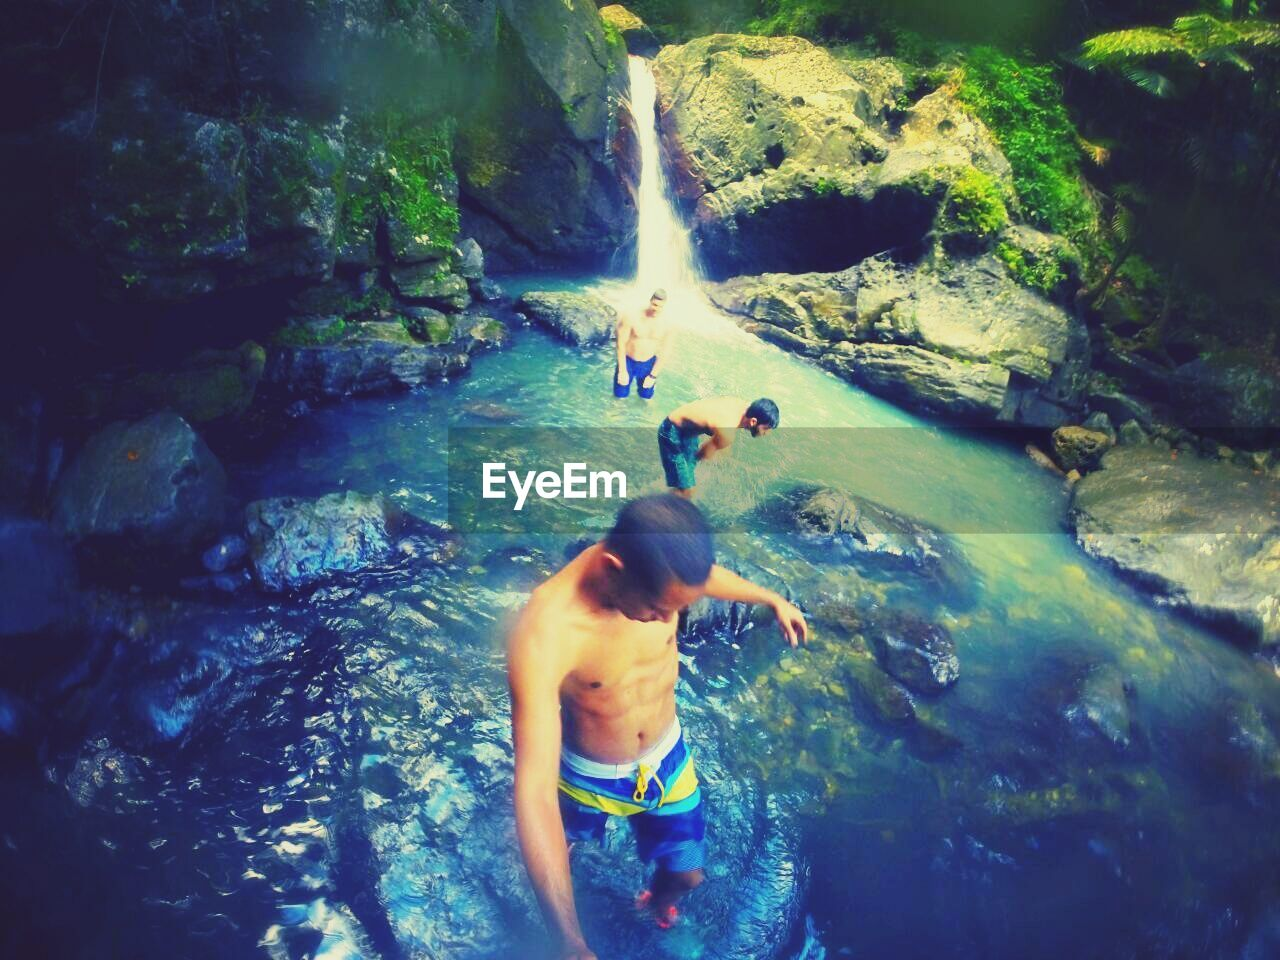 water, shirtless, waterfall, rock - object, real people, high angle view, river, motion, leisure activity, day, one person, adventure, nature, vacations, men, outdoors, lifestyles, standing, swimming, full length, beauty in nature, young adult, adult, people